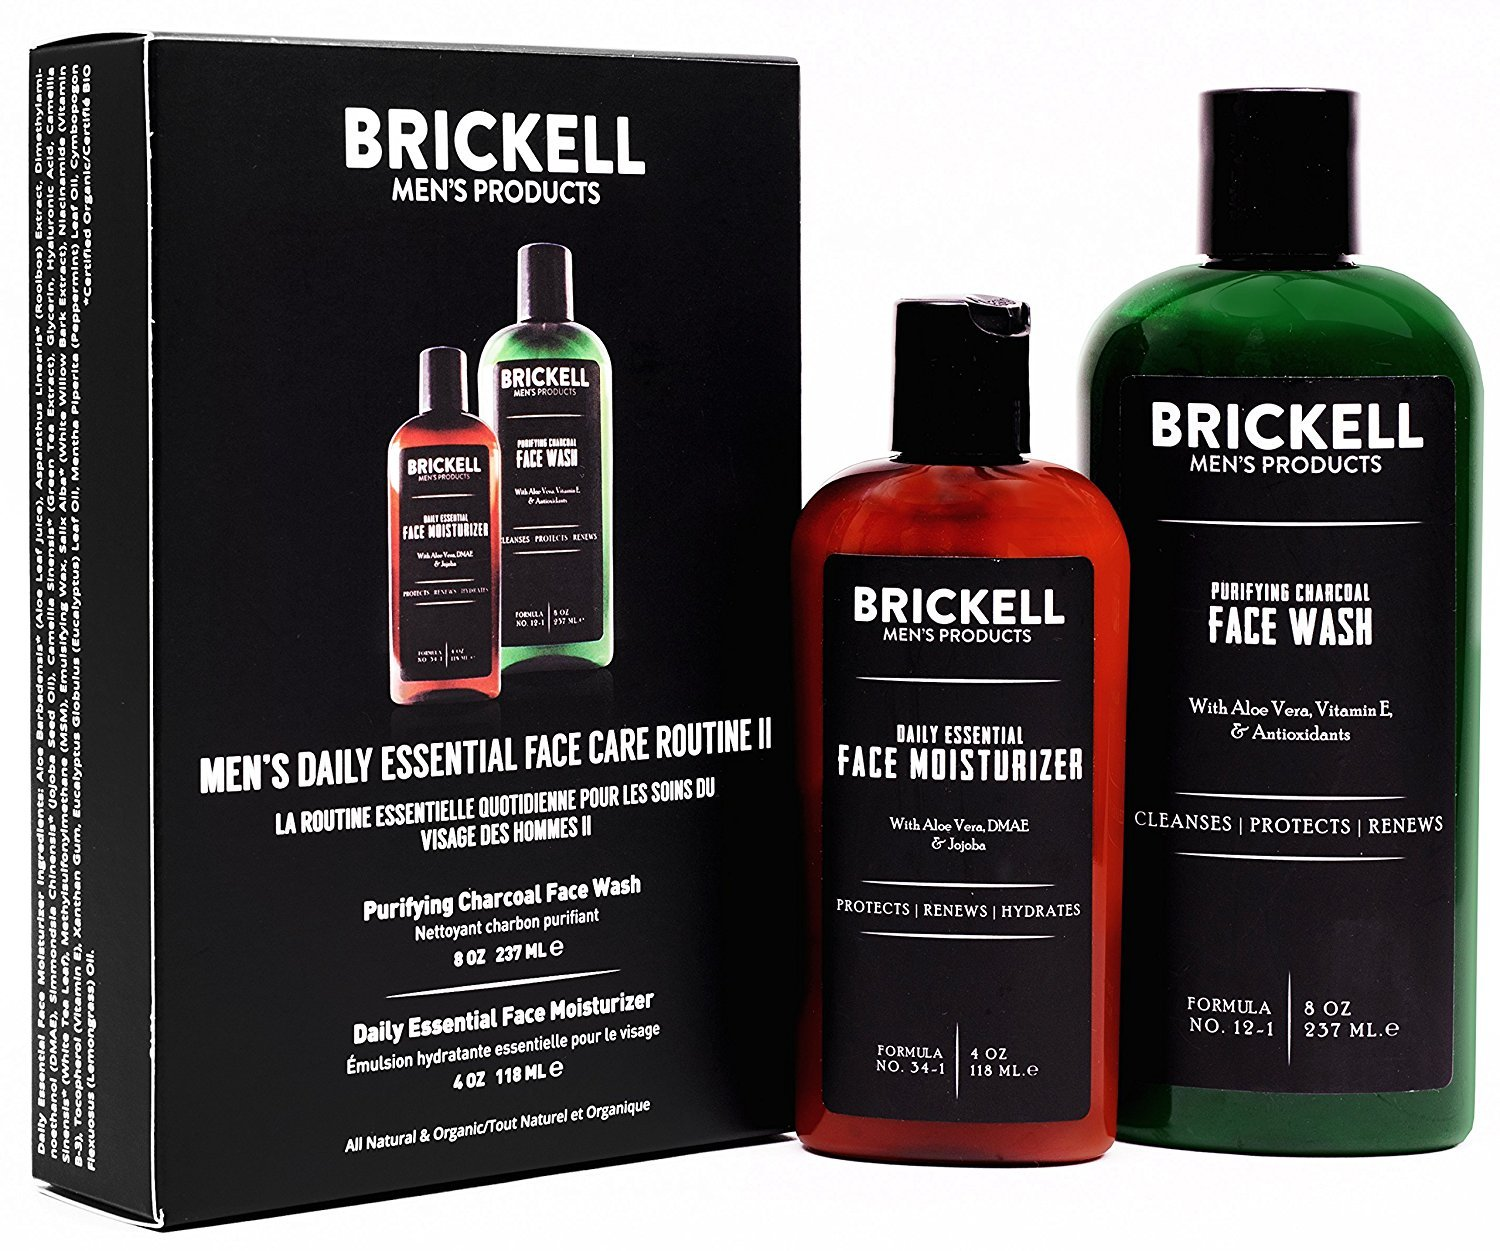 Brickell Men's Daily Essential Face Care Routine II, Purifying Charcoal Face Wash and Daily Essential Face Moisturizer, Natural and Organic, Scented